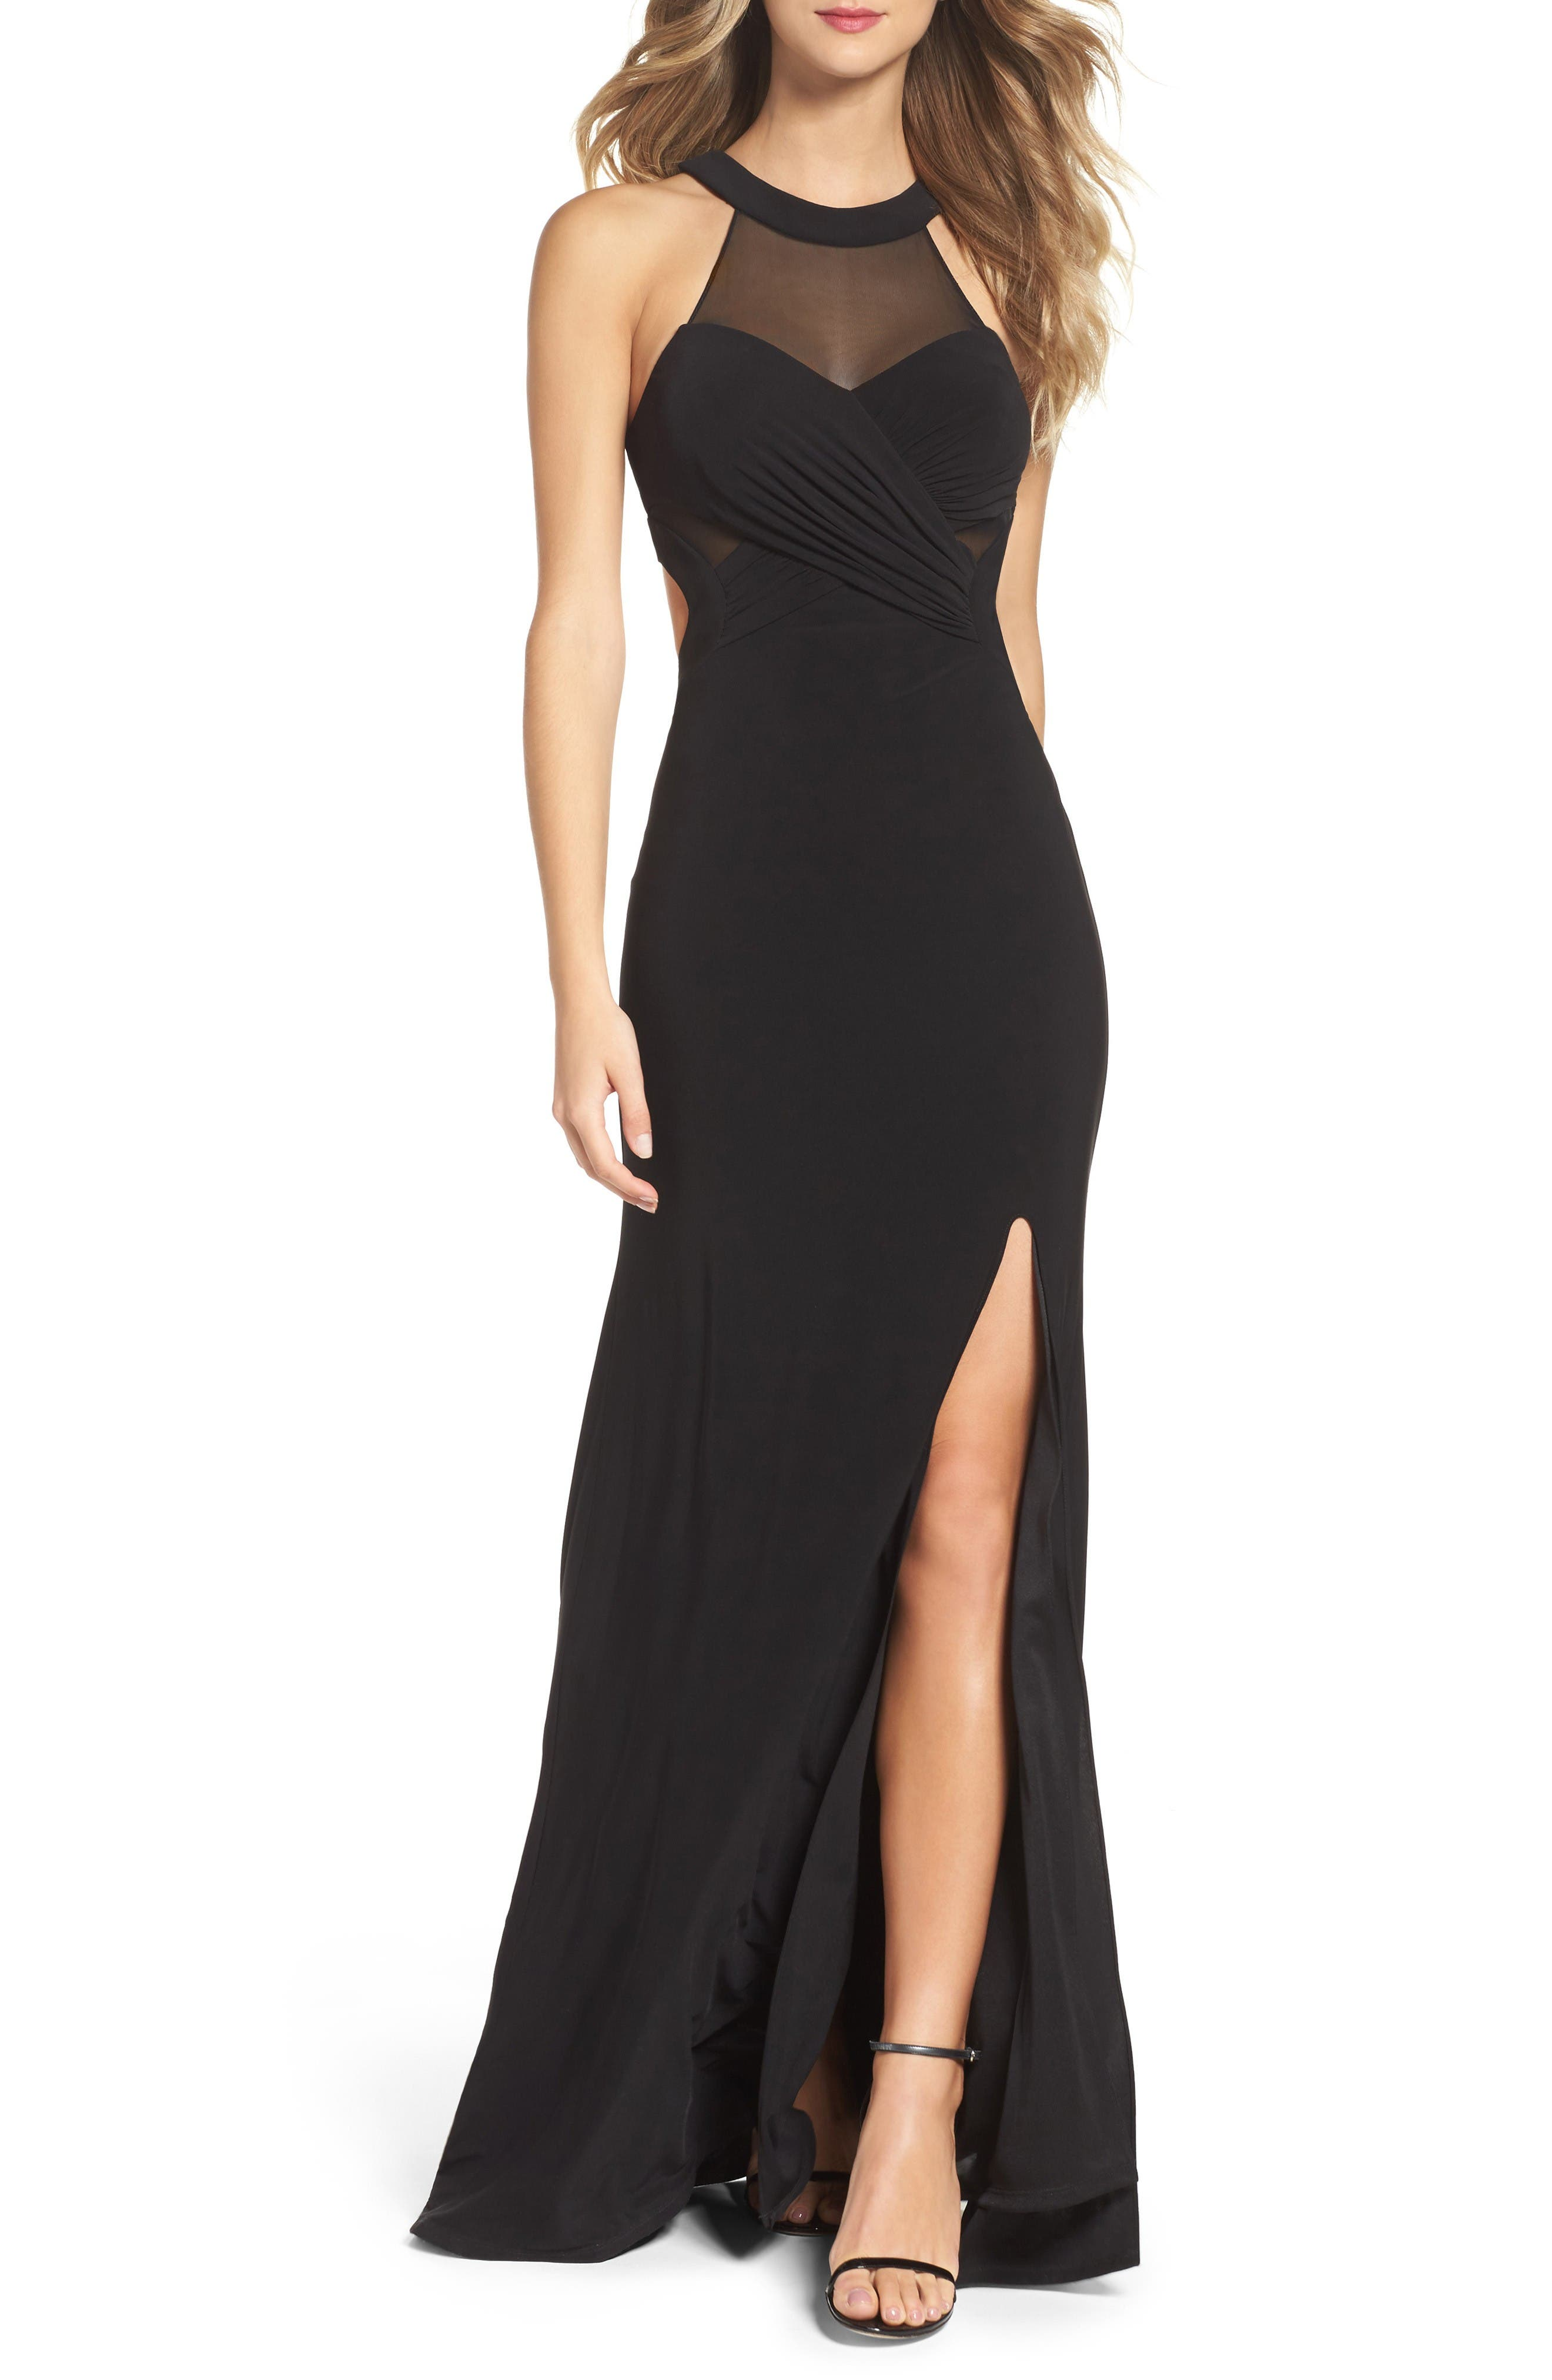 Alternate Image 1 Selected - Xscape Mesh & Jersey Gown (Regular & Petite)